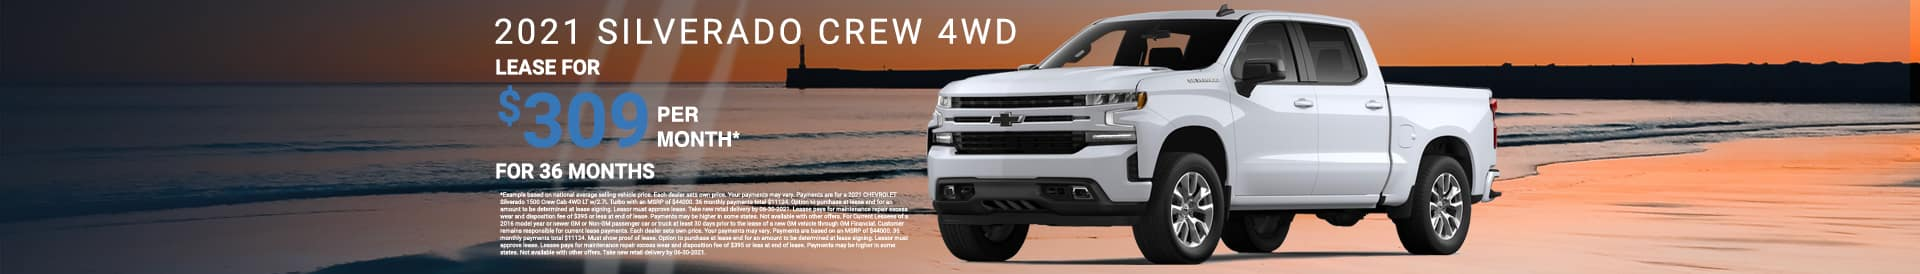 Hurry in today to get a great deal on a new Silverado from Coastal!